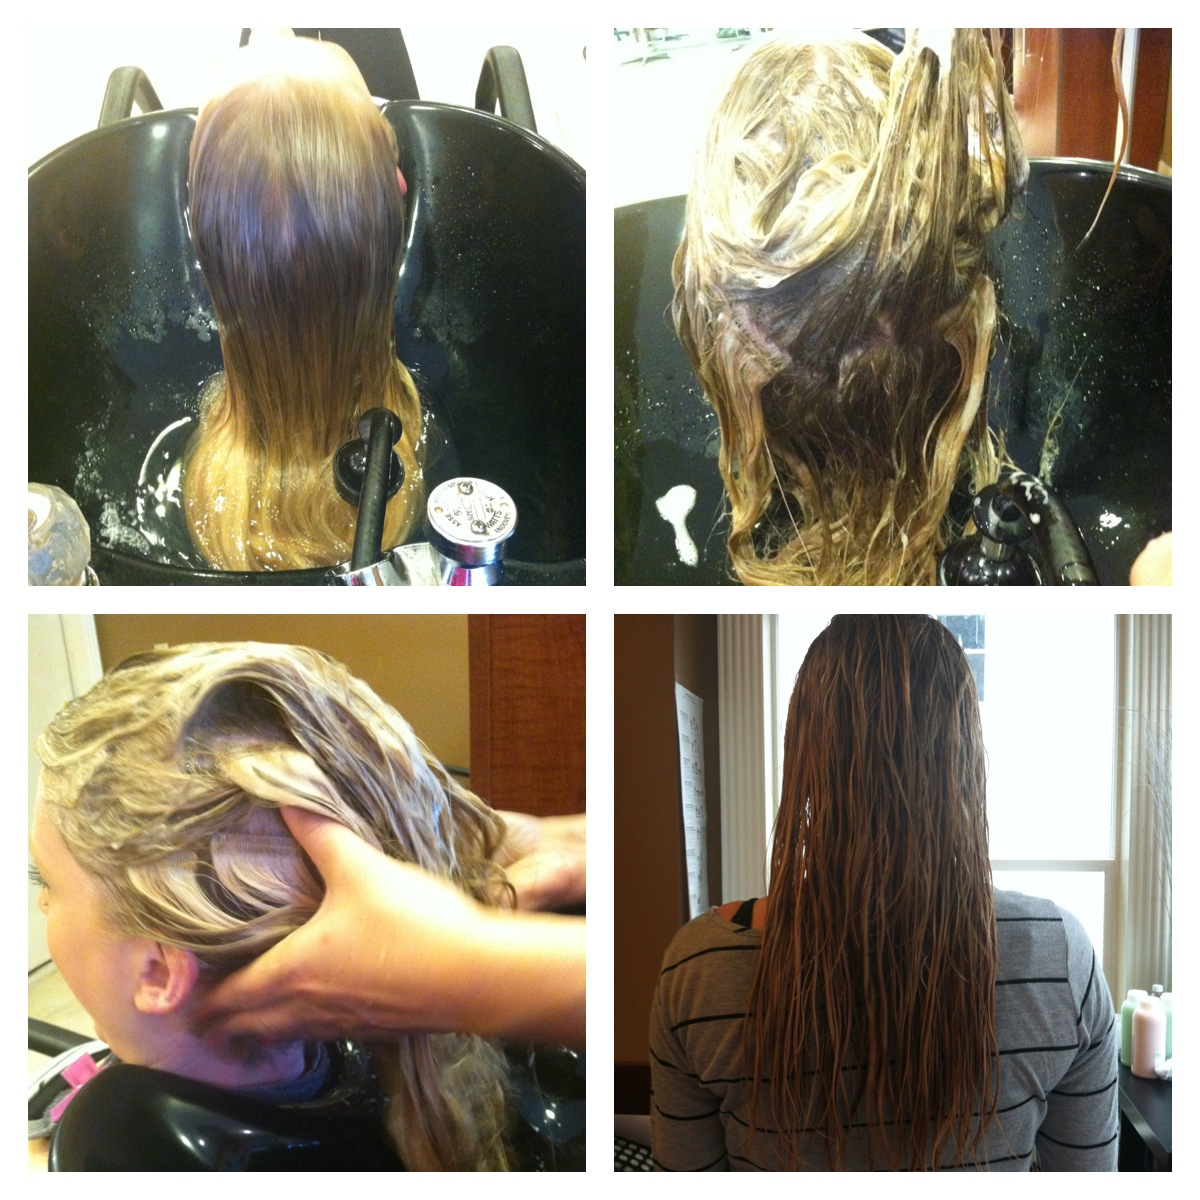 About those hair extensions angelboston step 1 pmusecretfo Choice Image